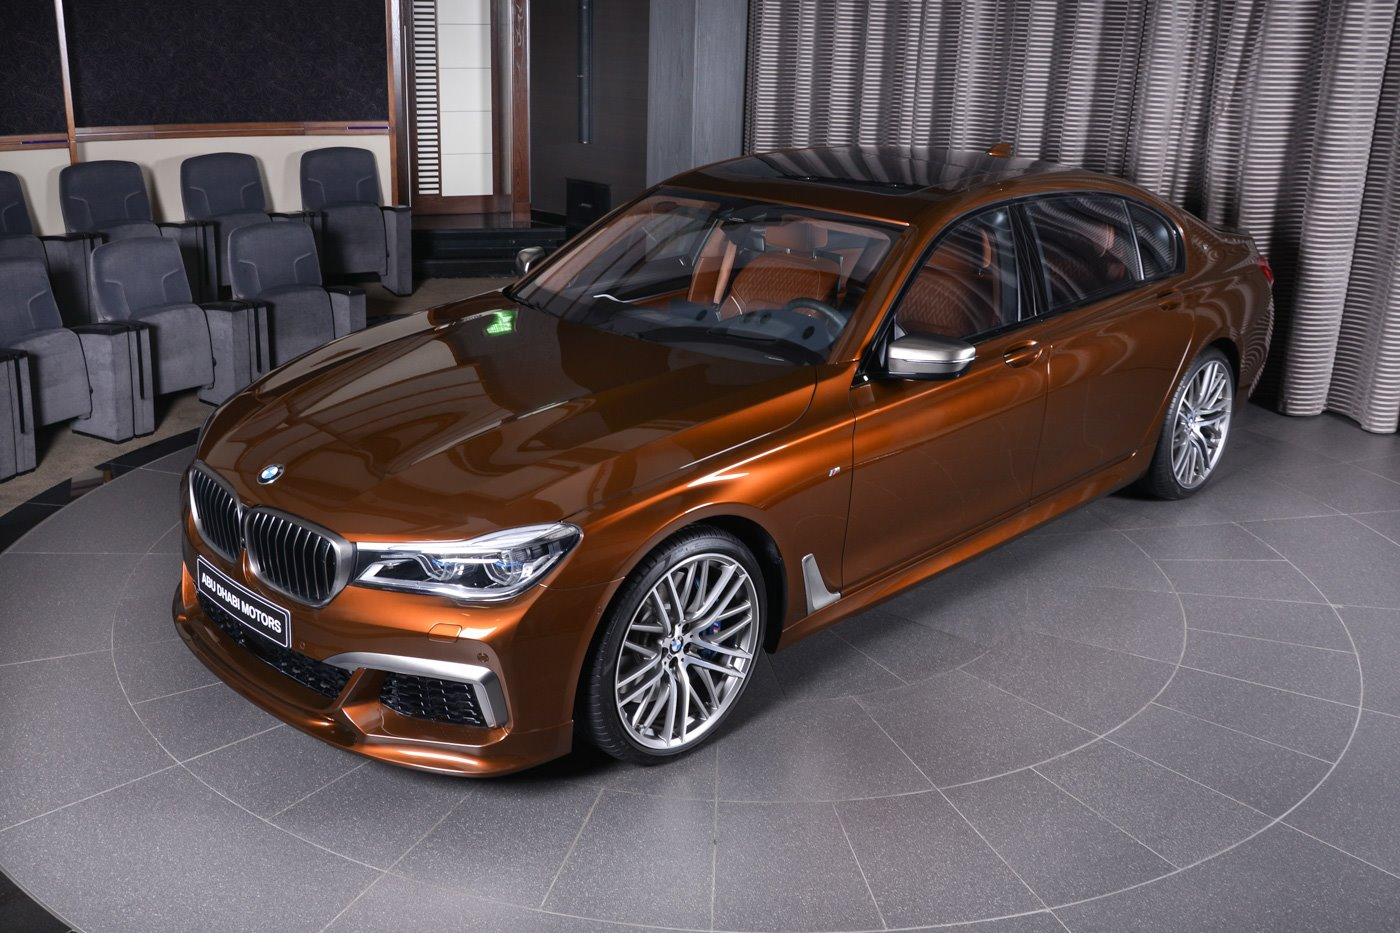 2017 BMW 6 Series >> Chestnut Bronze BMW M760Li xDrive Looks Rather Classy